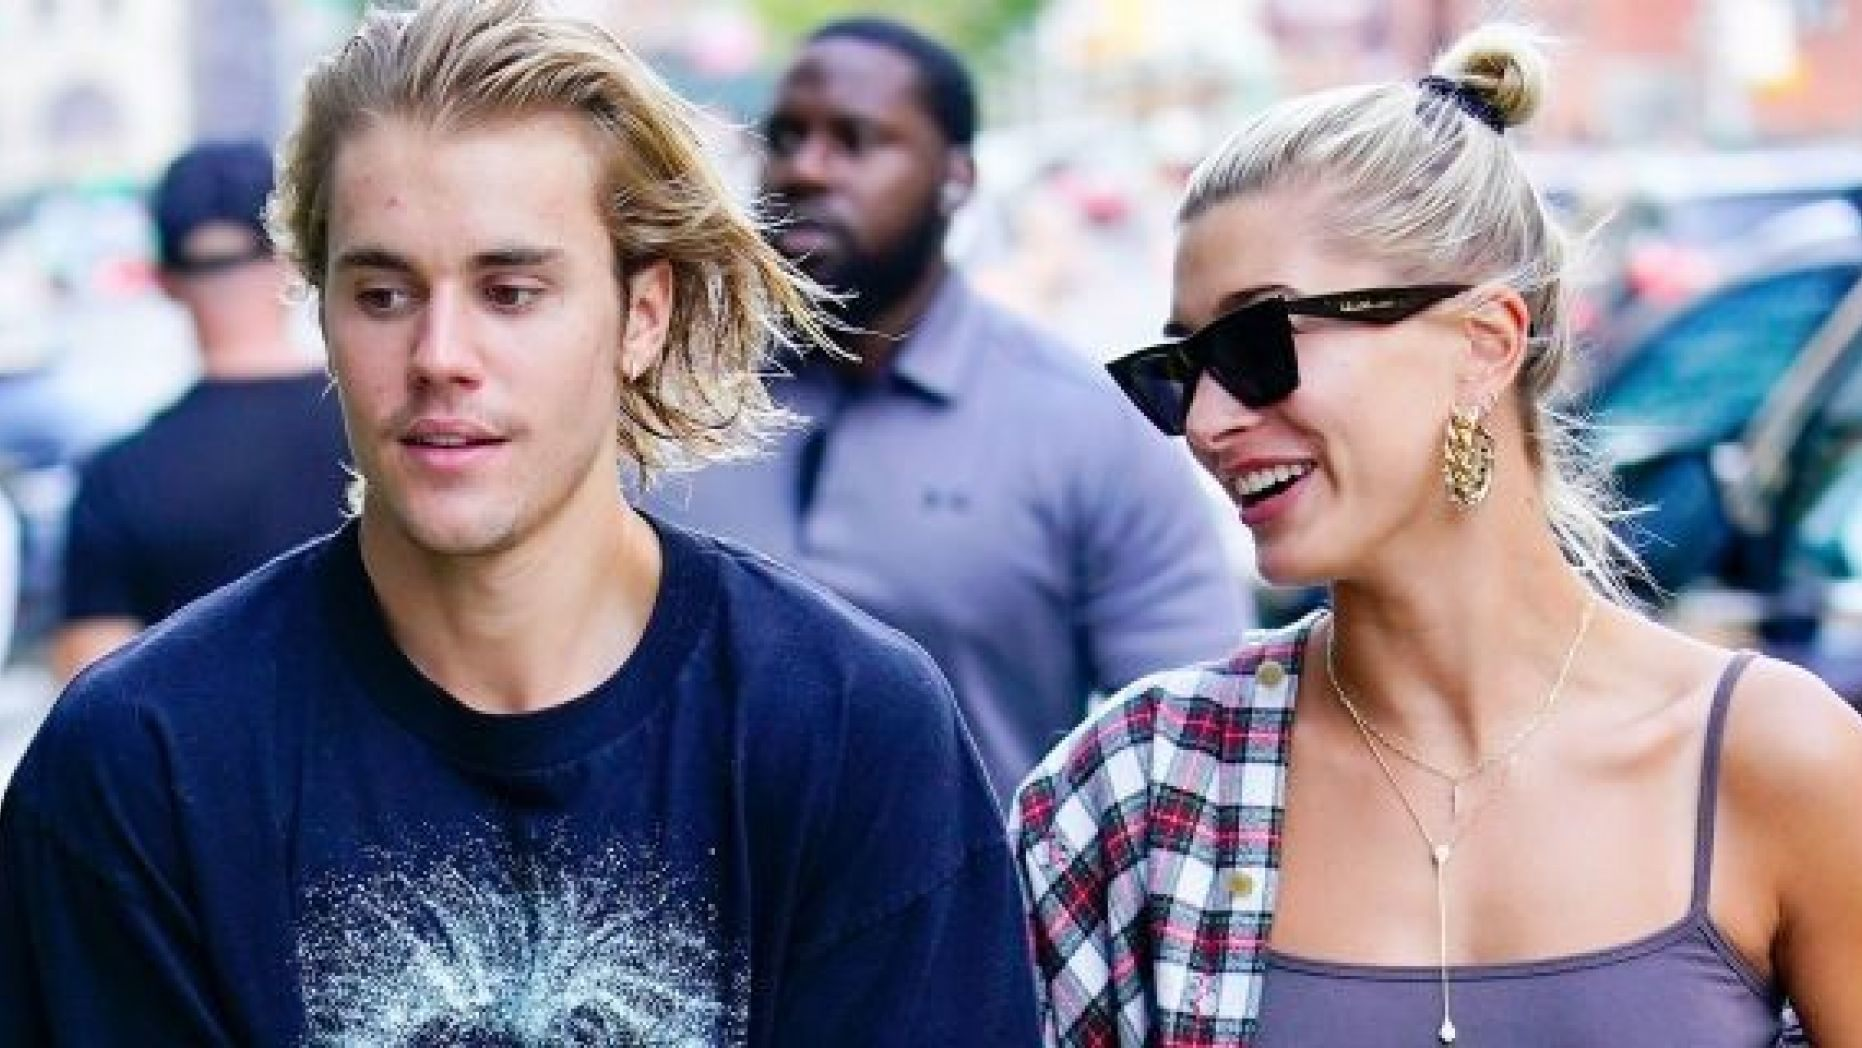 justin-bieber-announces-hailey-is-pregnant-on-april-fools-day-and-fans-arent-having-it